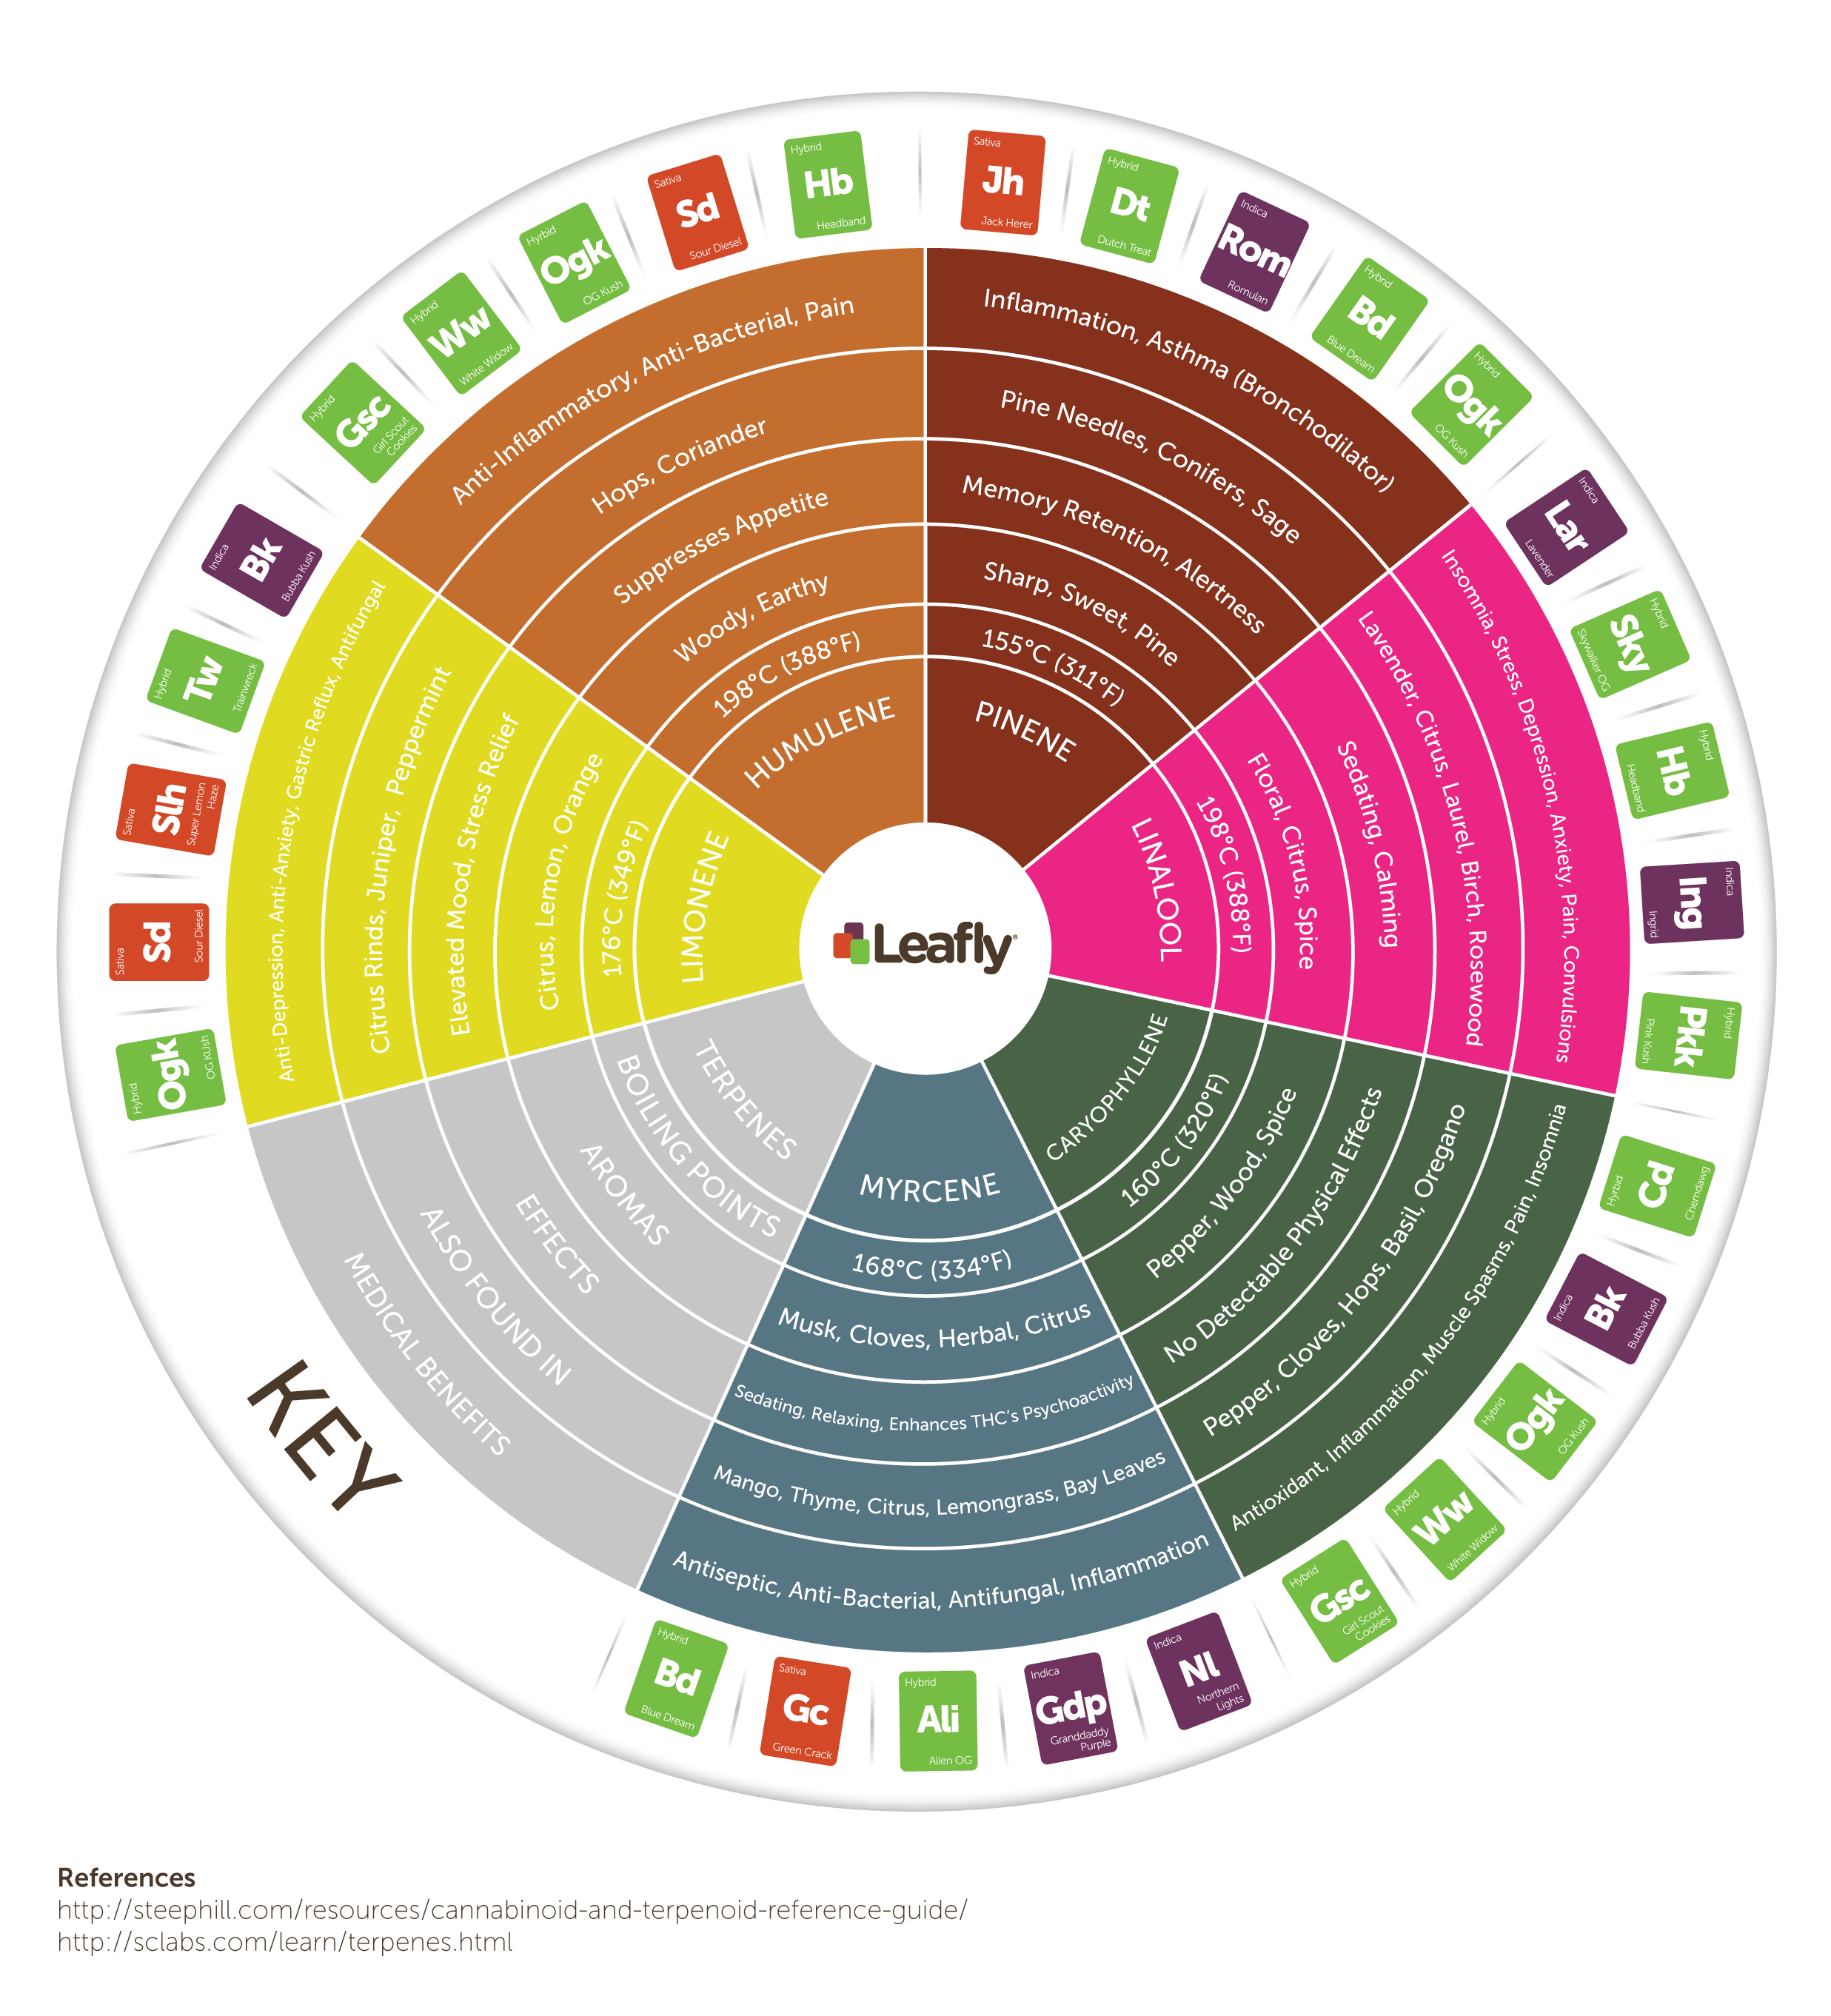 Leafly cannabis terpene wheel infographic